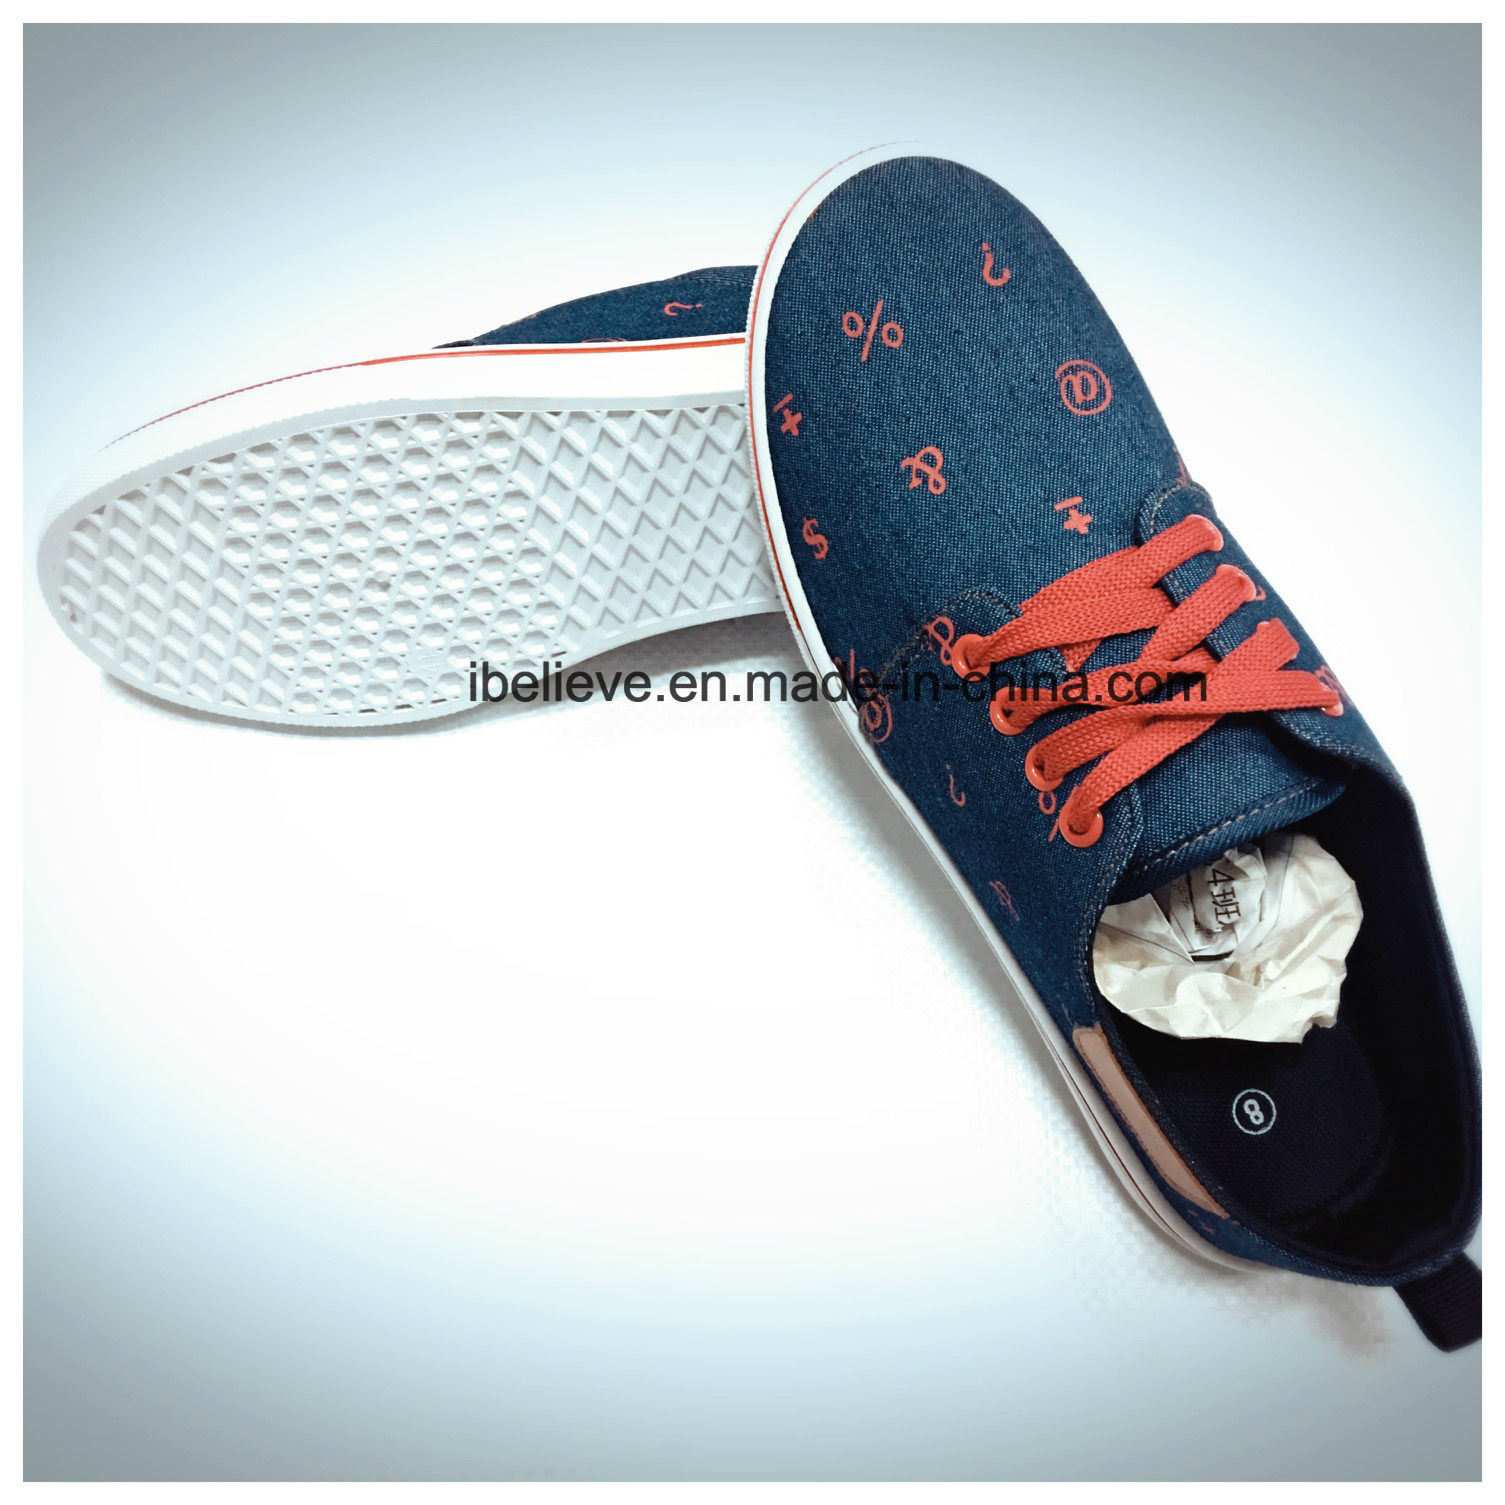 PVC Outsole Flat Shoe with Low Price with Good Quality